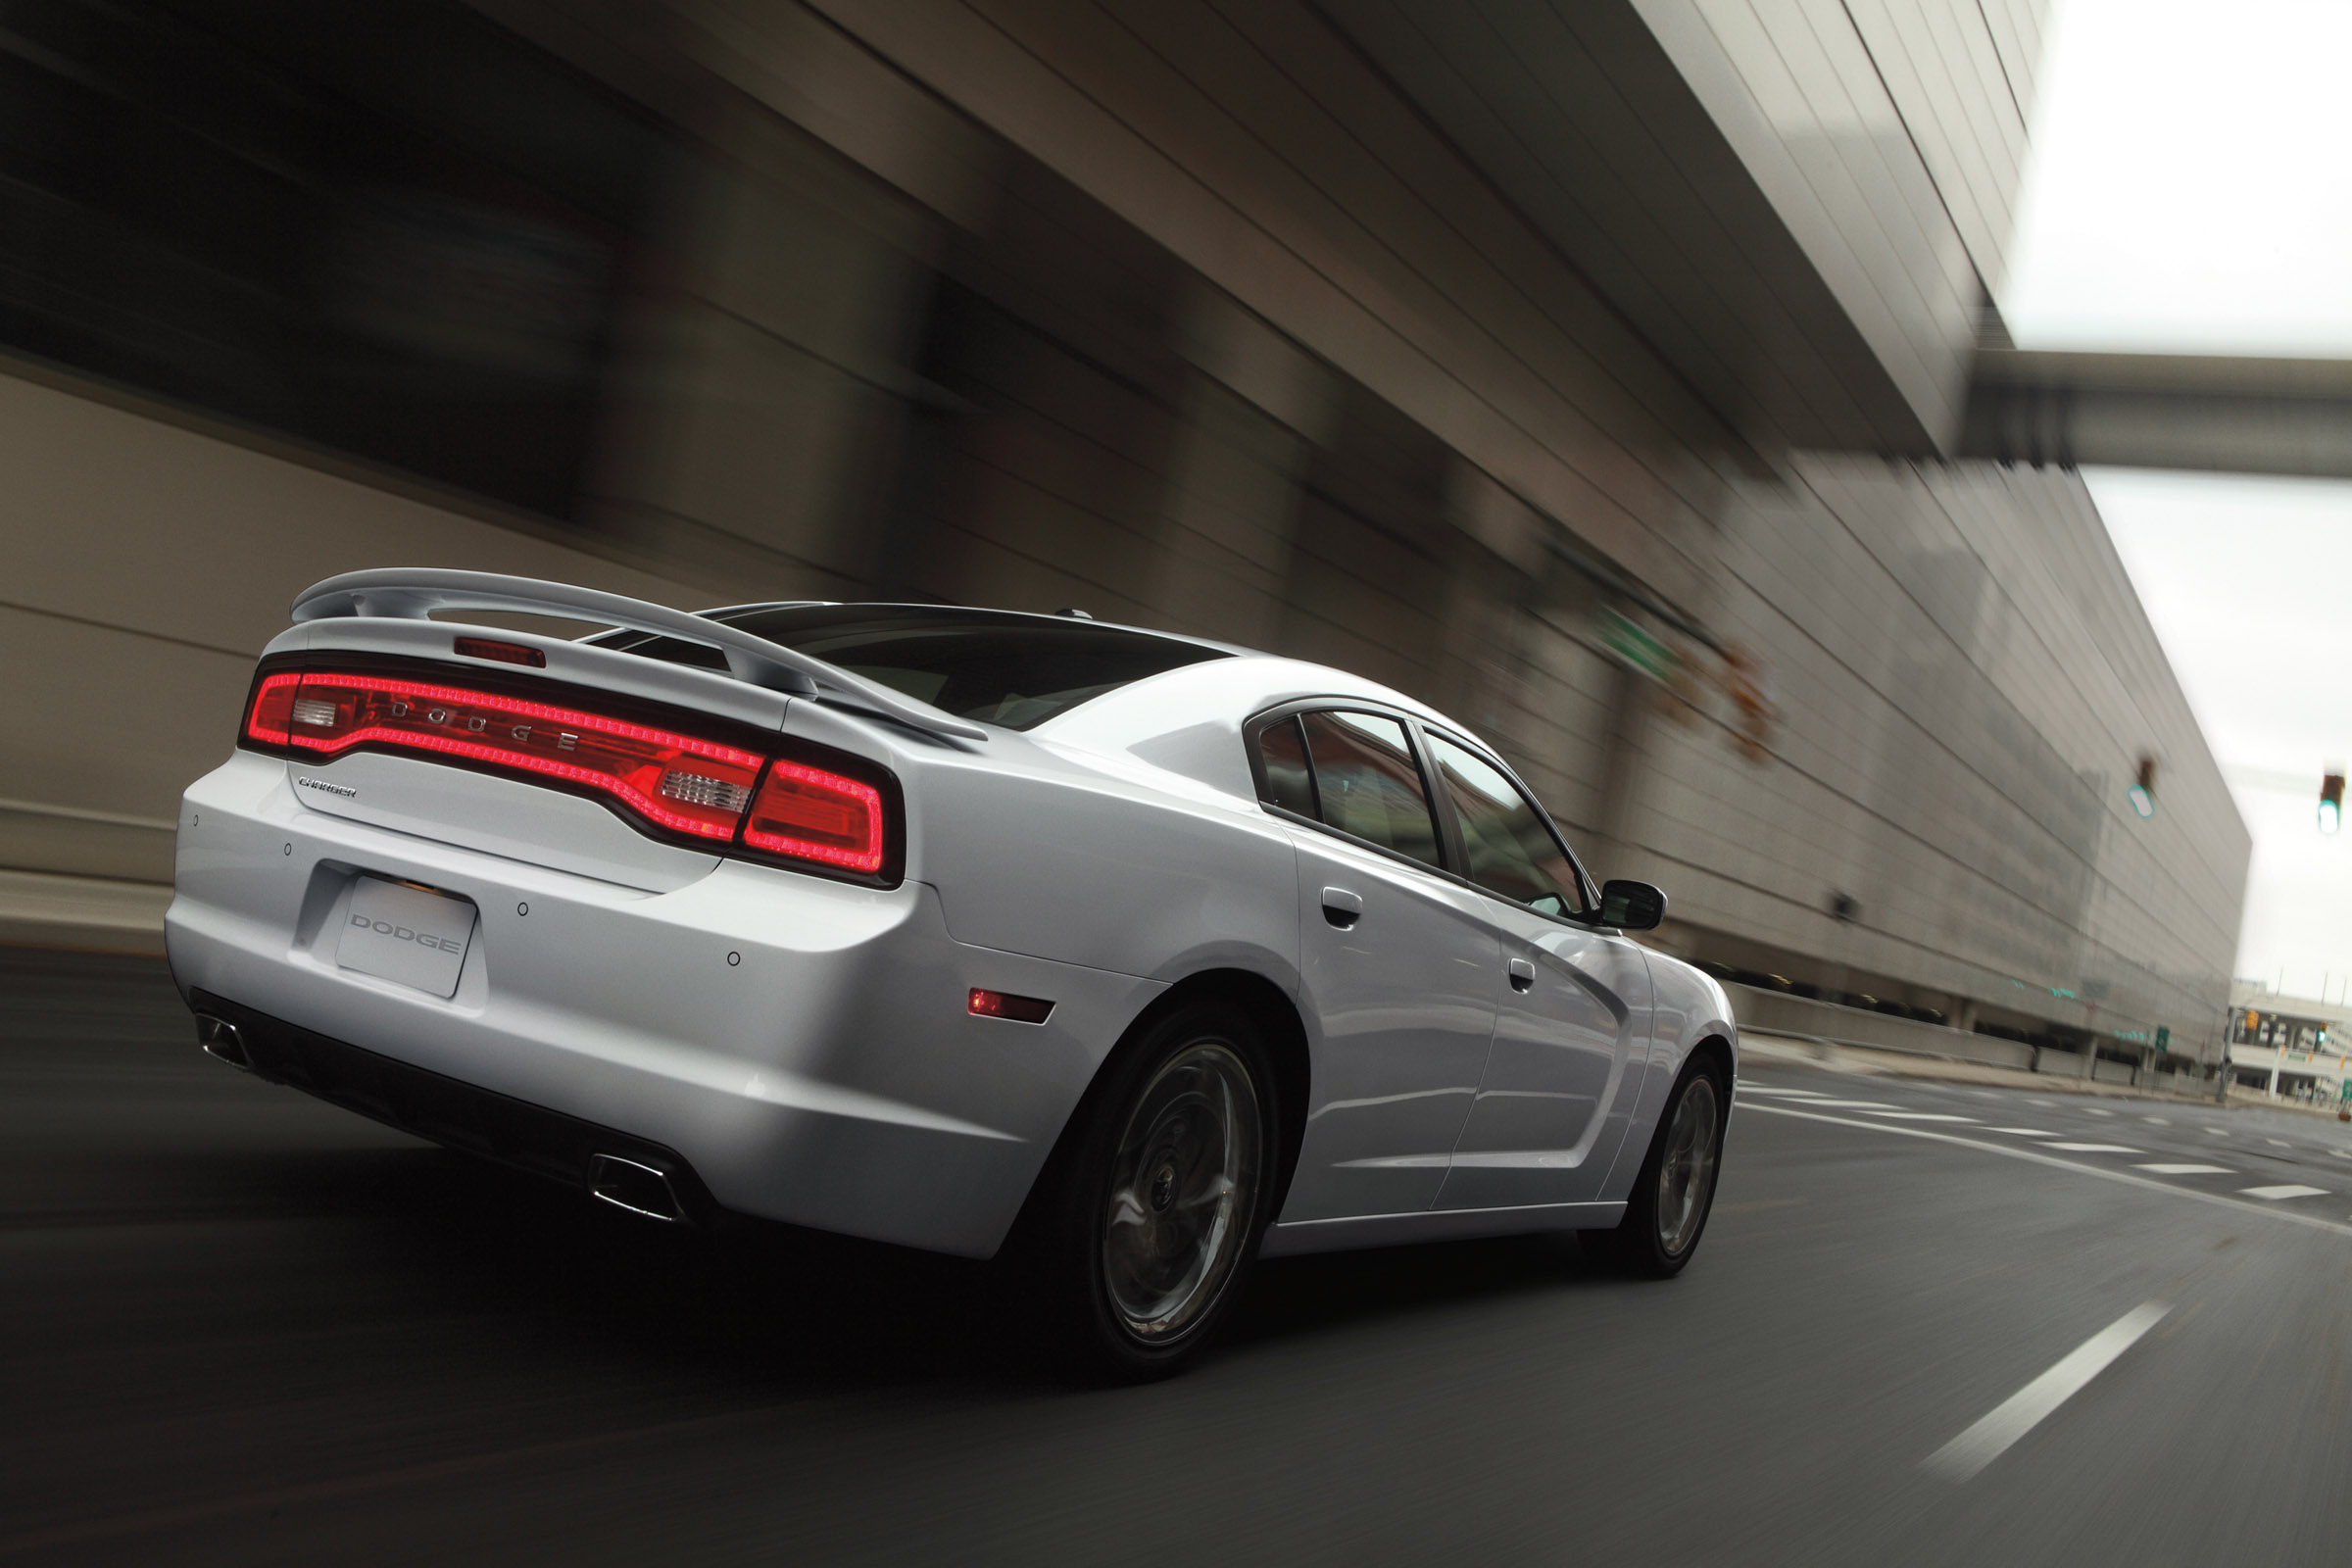 2012 Dodge Charger RT Enhanced by Beats